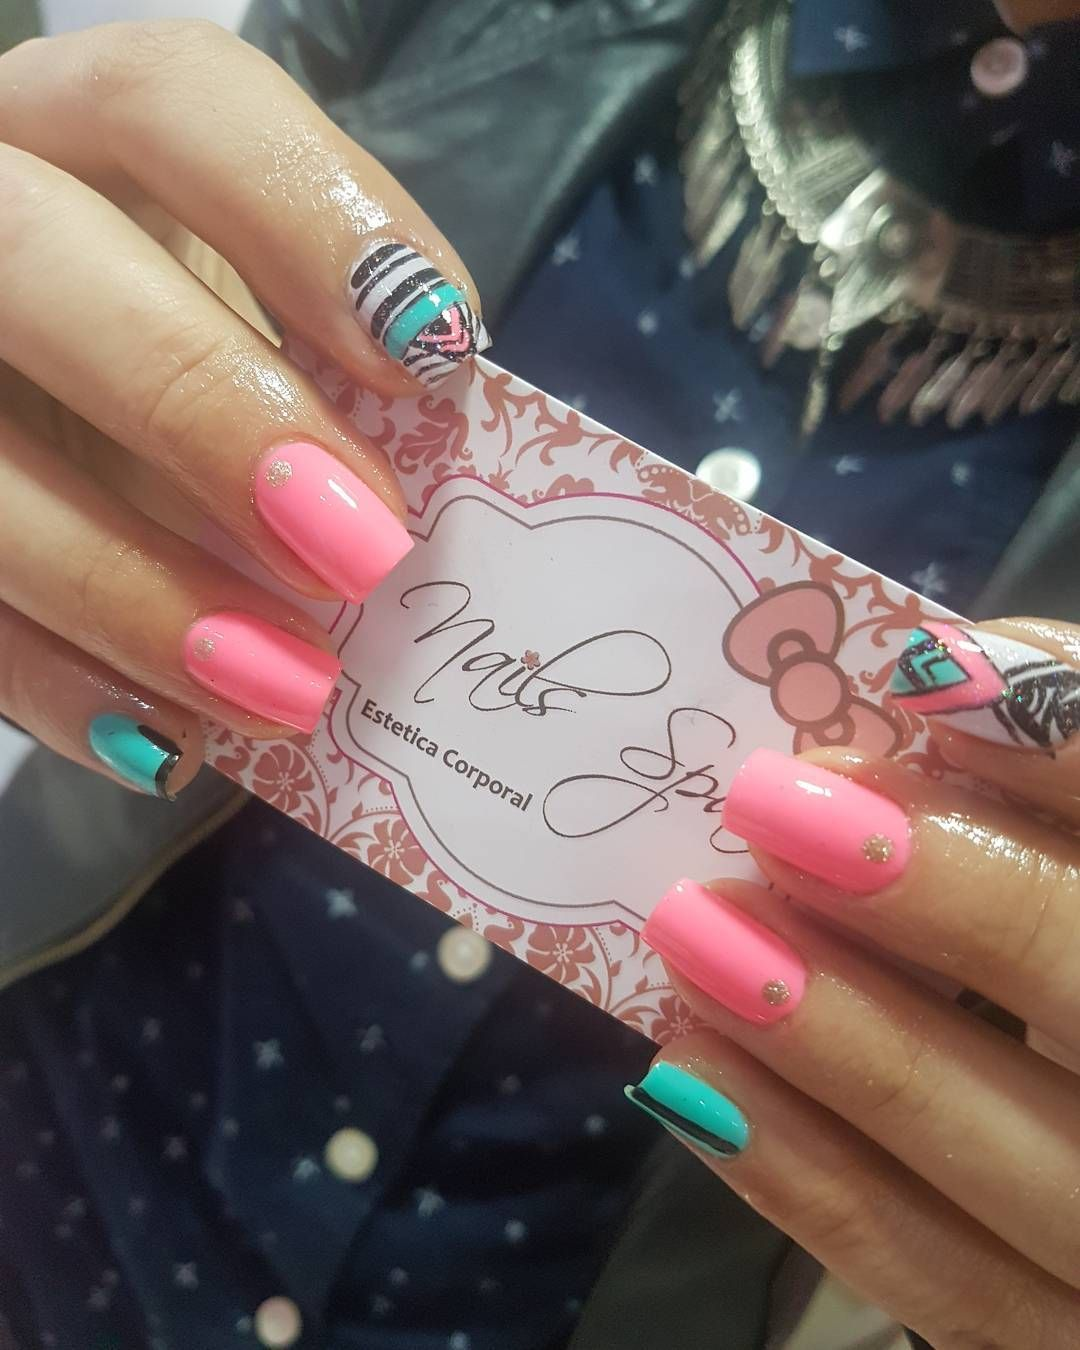 Pin by Móni Flores on uñas | Pinterest | Nail nail, Spa and Manicure